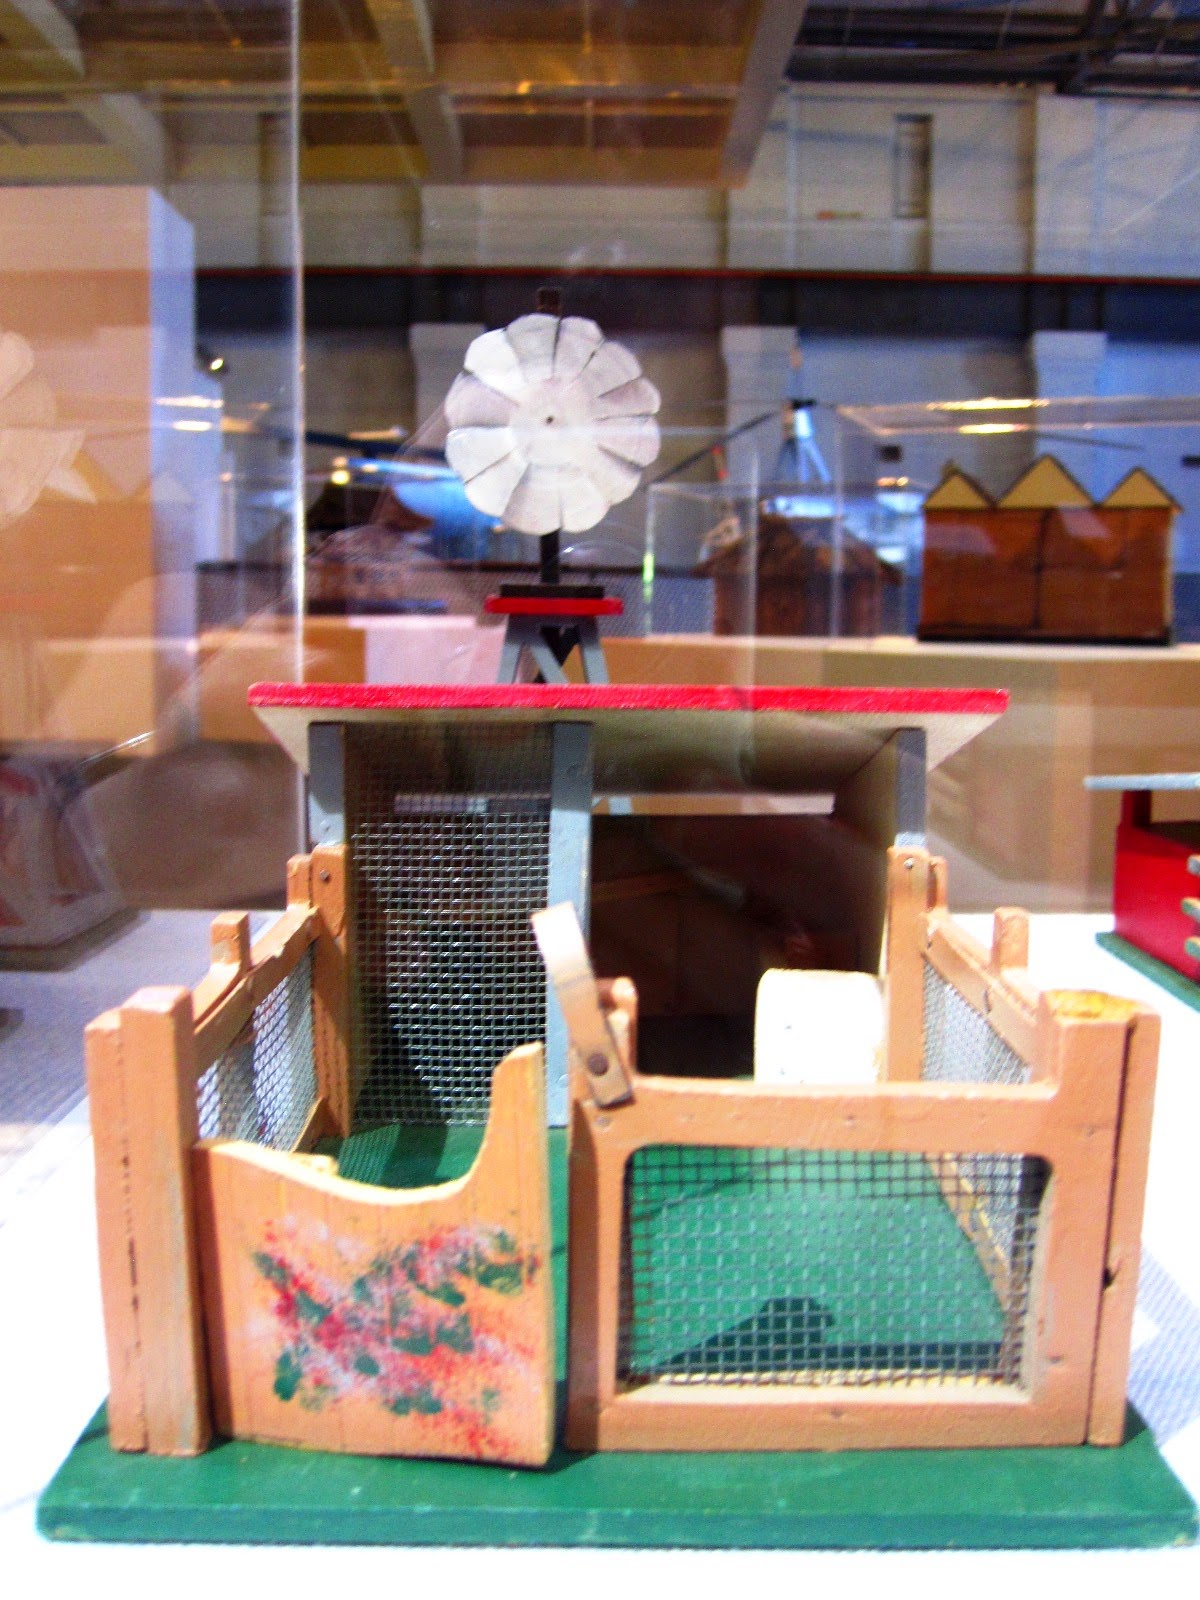 Vintage toy farm building and windmill from Sydney shop Walther & Stevenson.